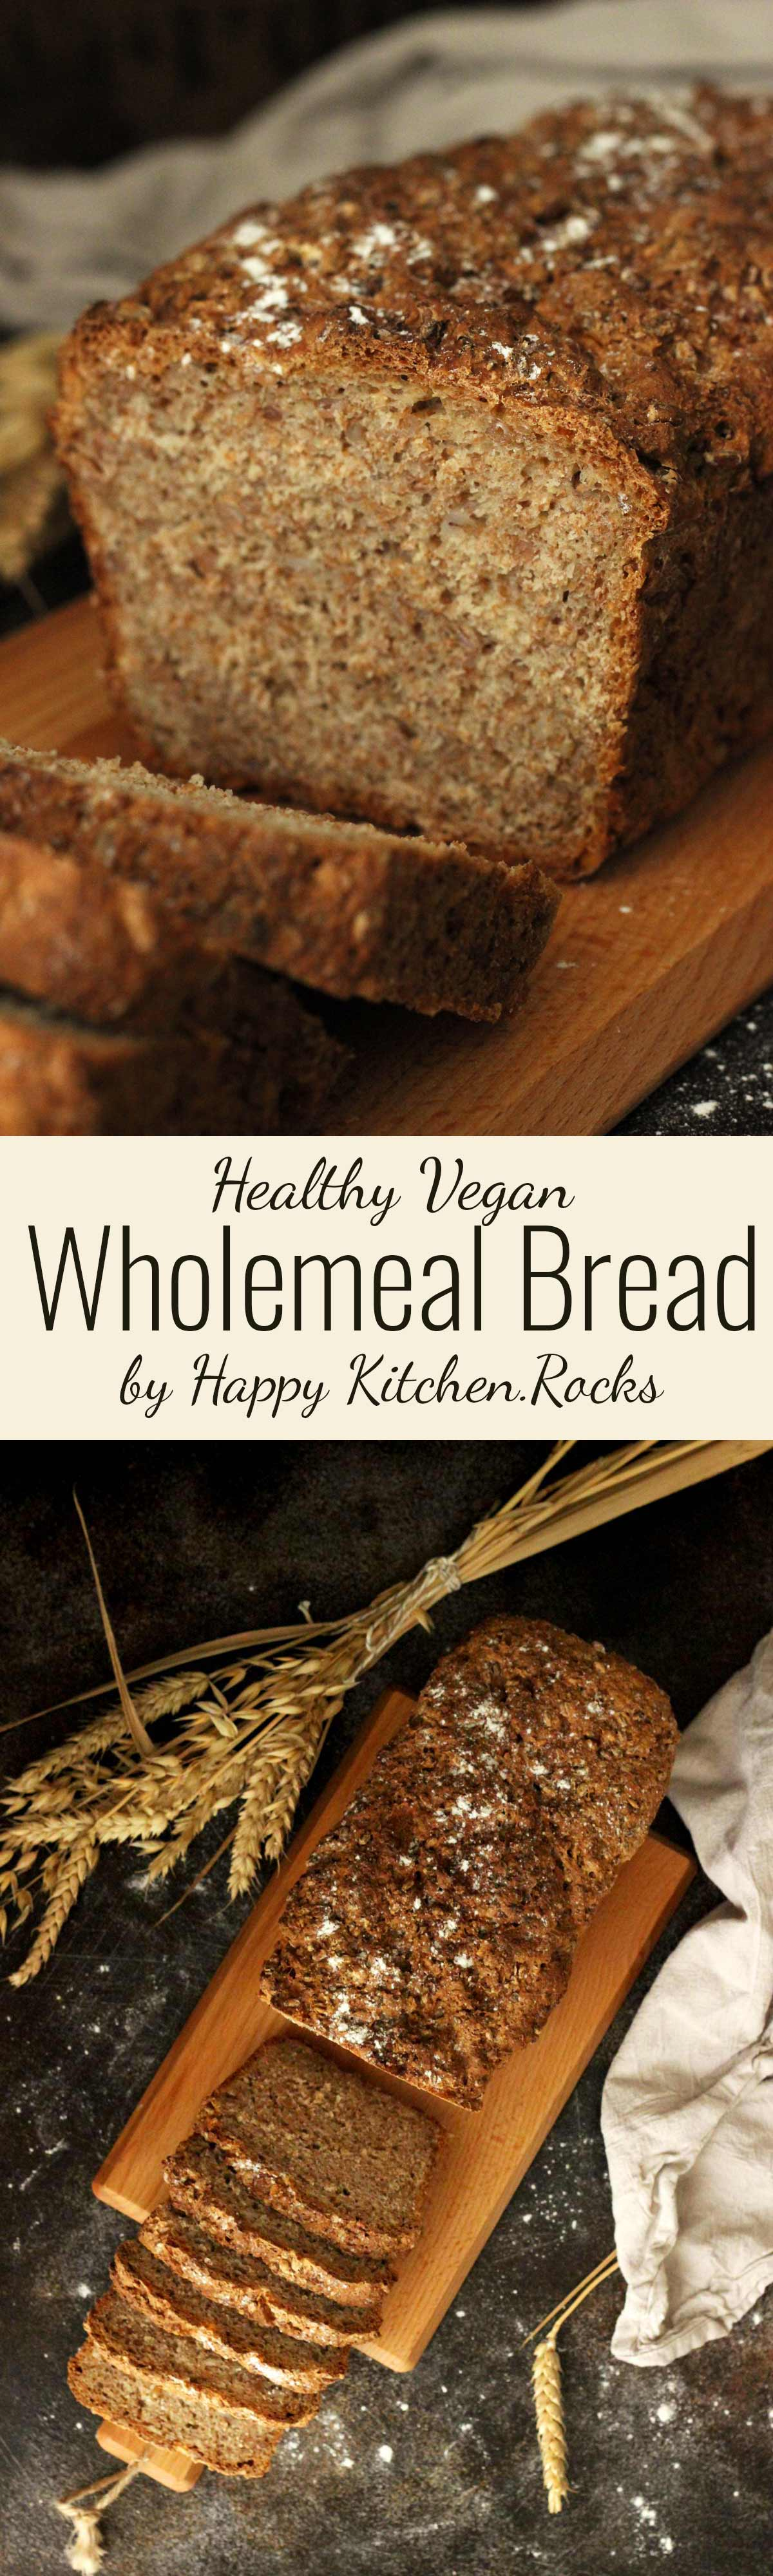 Healthy Wholemeal Bread Super Long Collage with Text Overlay